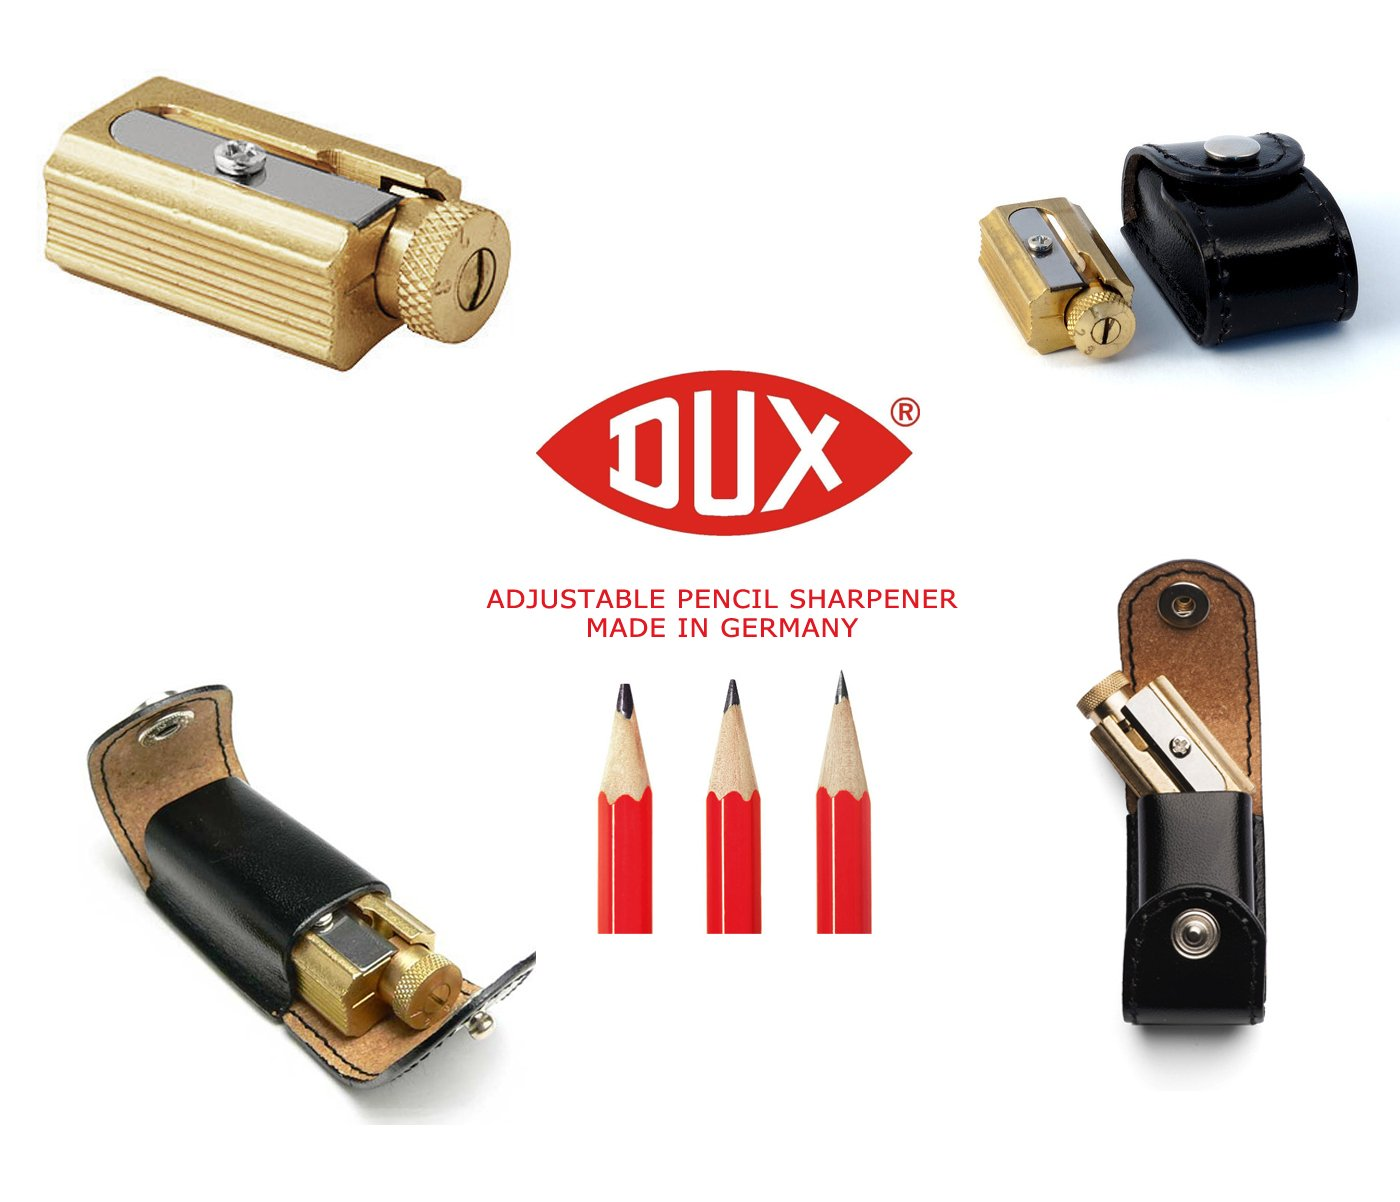 Legendary DUX Adjustable Pencil Sharpener - brass in a genuine leather case - Made in Germany by DUX